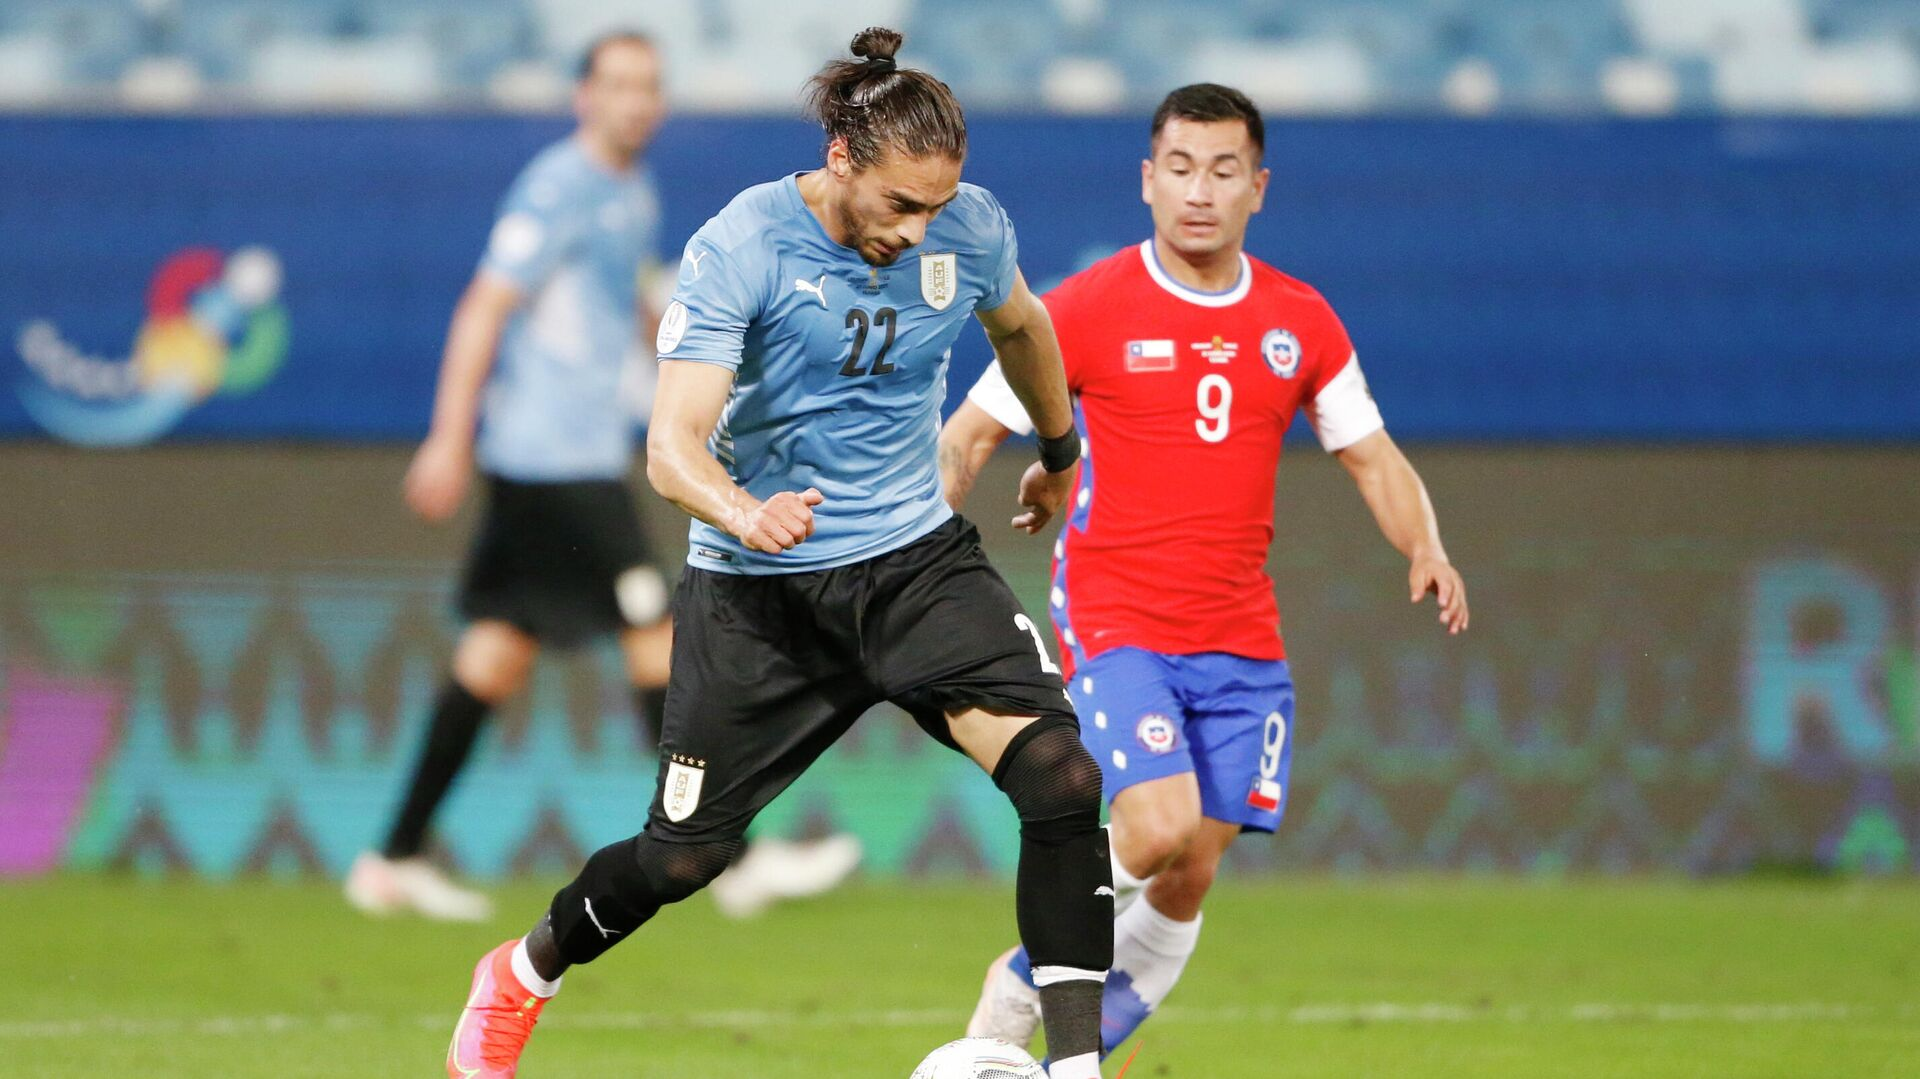 Soccer Football - Copa America 2021 - Group A - Uruguay v Chile - Arena Pantanal, Cuiaba, Brazil - June 21, 2021 Uruguay's Martin Caceres in action with Chile's Jean Meneses REUTERS/Mariana Greif - РИА Новости, 1920, 22.06.2021